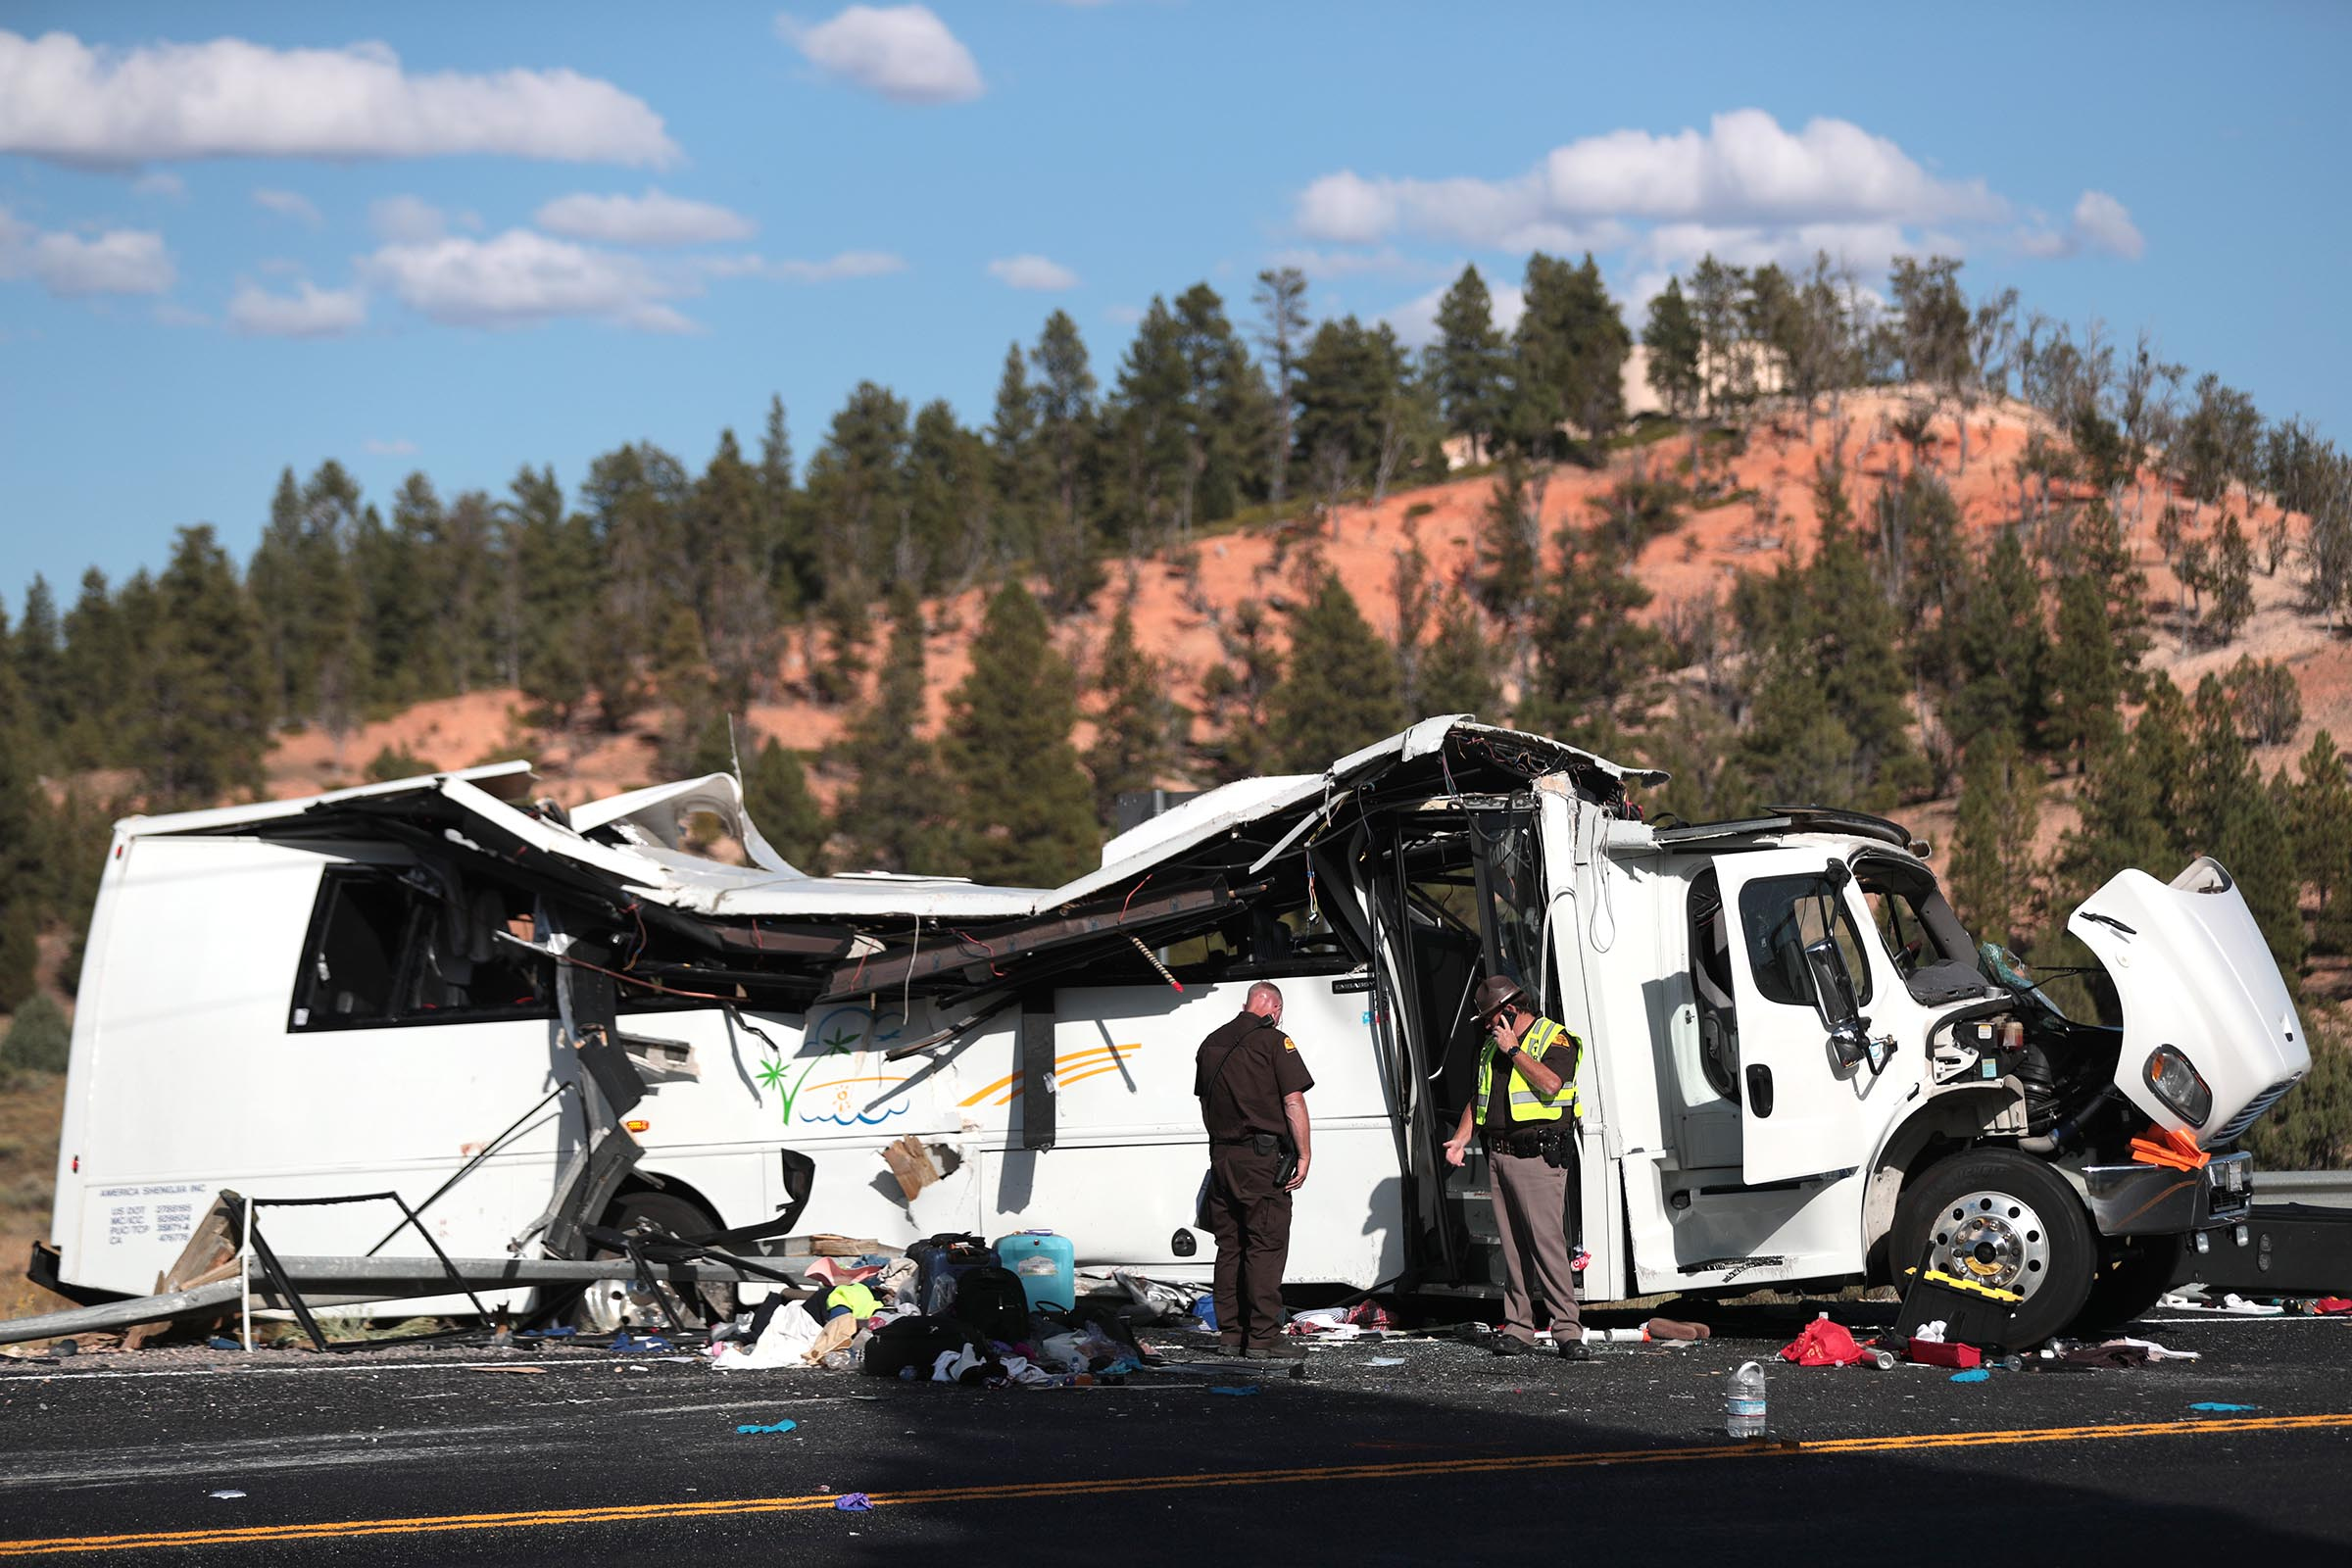 At least four people were killed in a tour bus crash near Bryce Canyon National Park on Friday, Sept. 20, 2019. Local hospitals are treating another 17 patients.